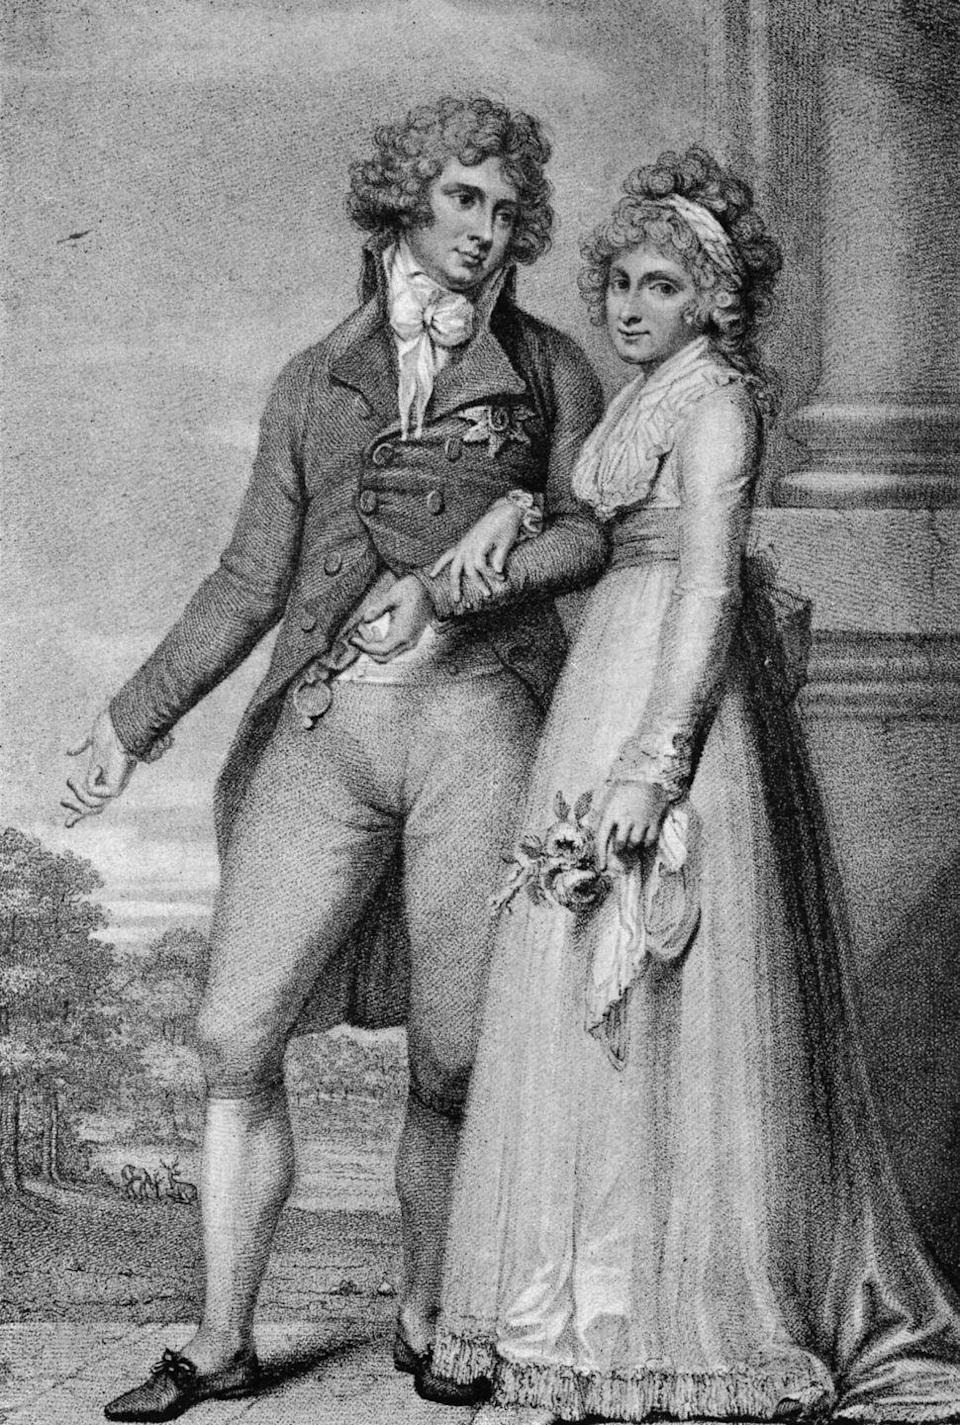 "<p>George IV appears to have had quite the scandalous life. According to the <a href=""http://news.bbc.co.uk/1/hi/programmes/monarchy/2015428.stm"" rel=""nofollow noopener"" target=""_blank"" data-ylk=""slk:BBC"" class=""link rapid-noclick-resp"">BBC</a>, the royal ""secretly and illegally married a Catholic who he had to abandon for an approved match with his cousin Caroline of Brunswick."" The cousins did not hit it off, and upon seeing his new bride, George IV reportedly said, ""I am not well; pray get me a glass of brandy."" <a href=""https://life.spectator.co.uk/articles/a-curious-history-of-royal-weddings/"" rel=""nofollow noopener"" target=""_blank"" data-ylk=""slk:Spectator Life"" class=""link rapid-noclick-resp""><em>Spectator Life</em></a> reported that Caroline gave as good as she got and called her new husband, ""nothing like as handsome as his portrait.""</p>"